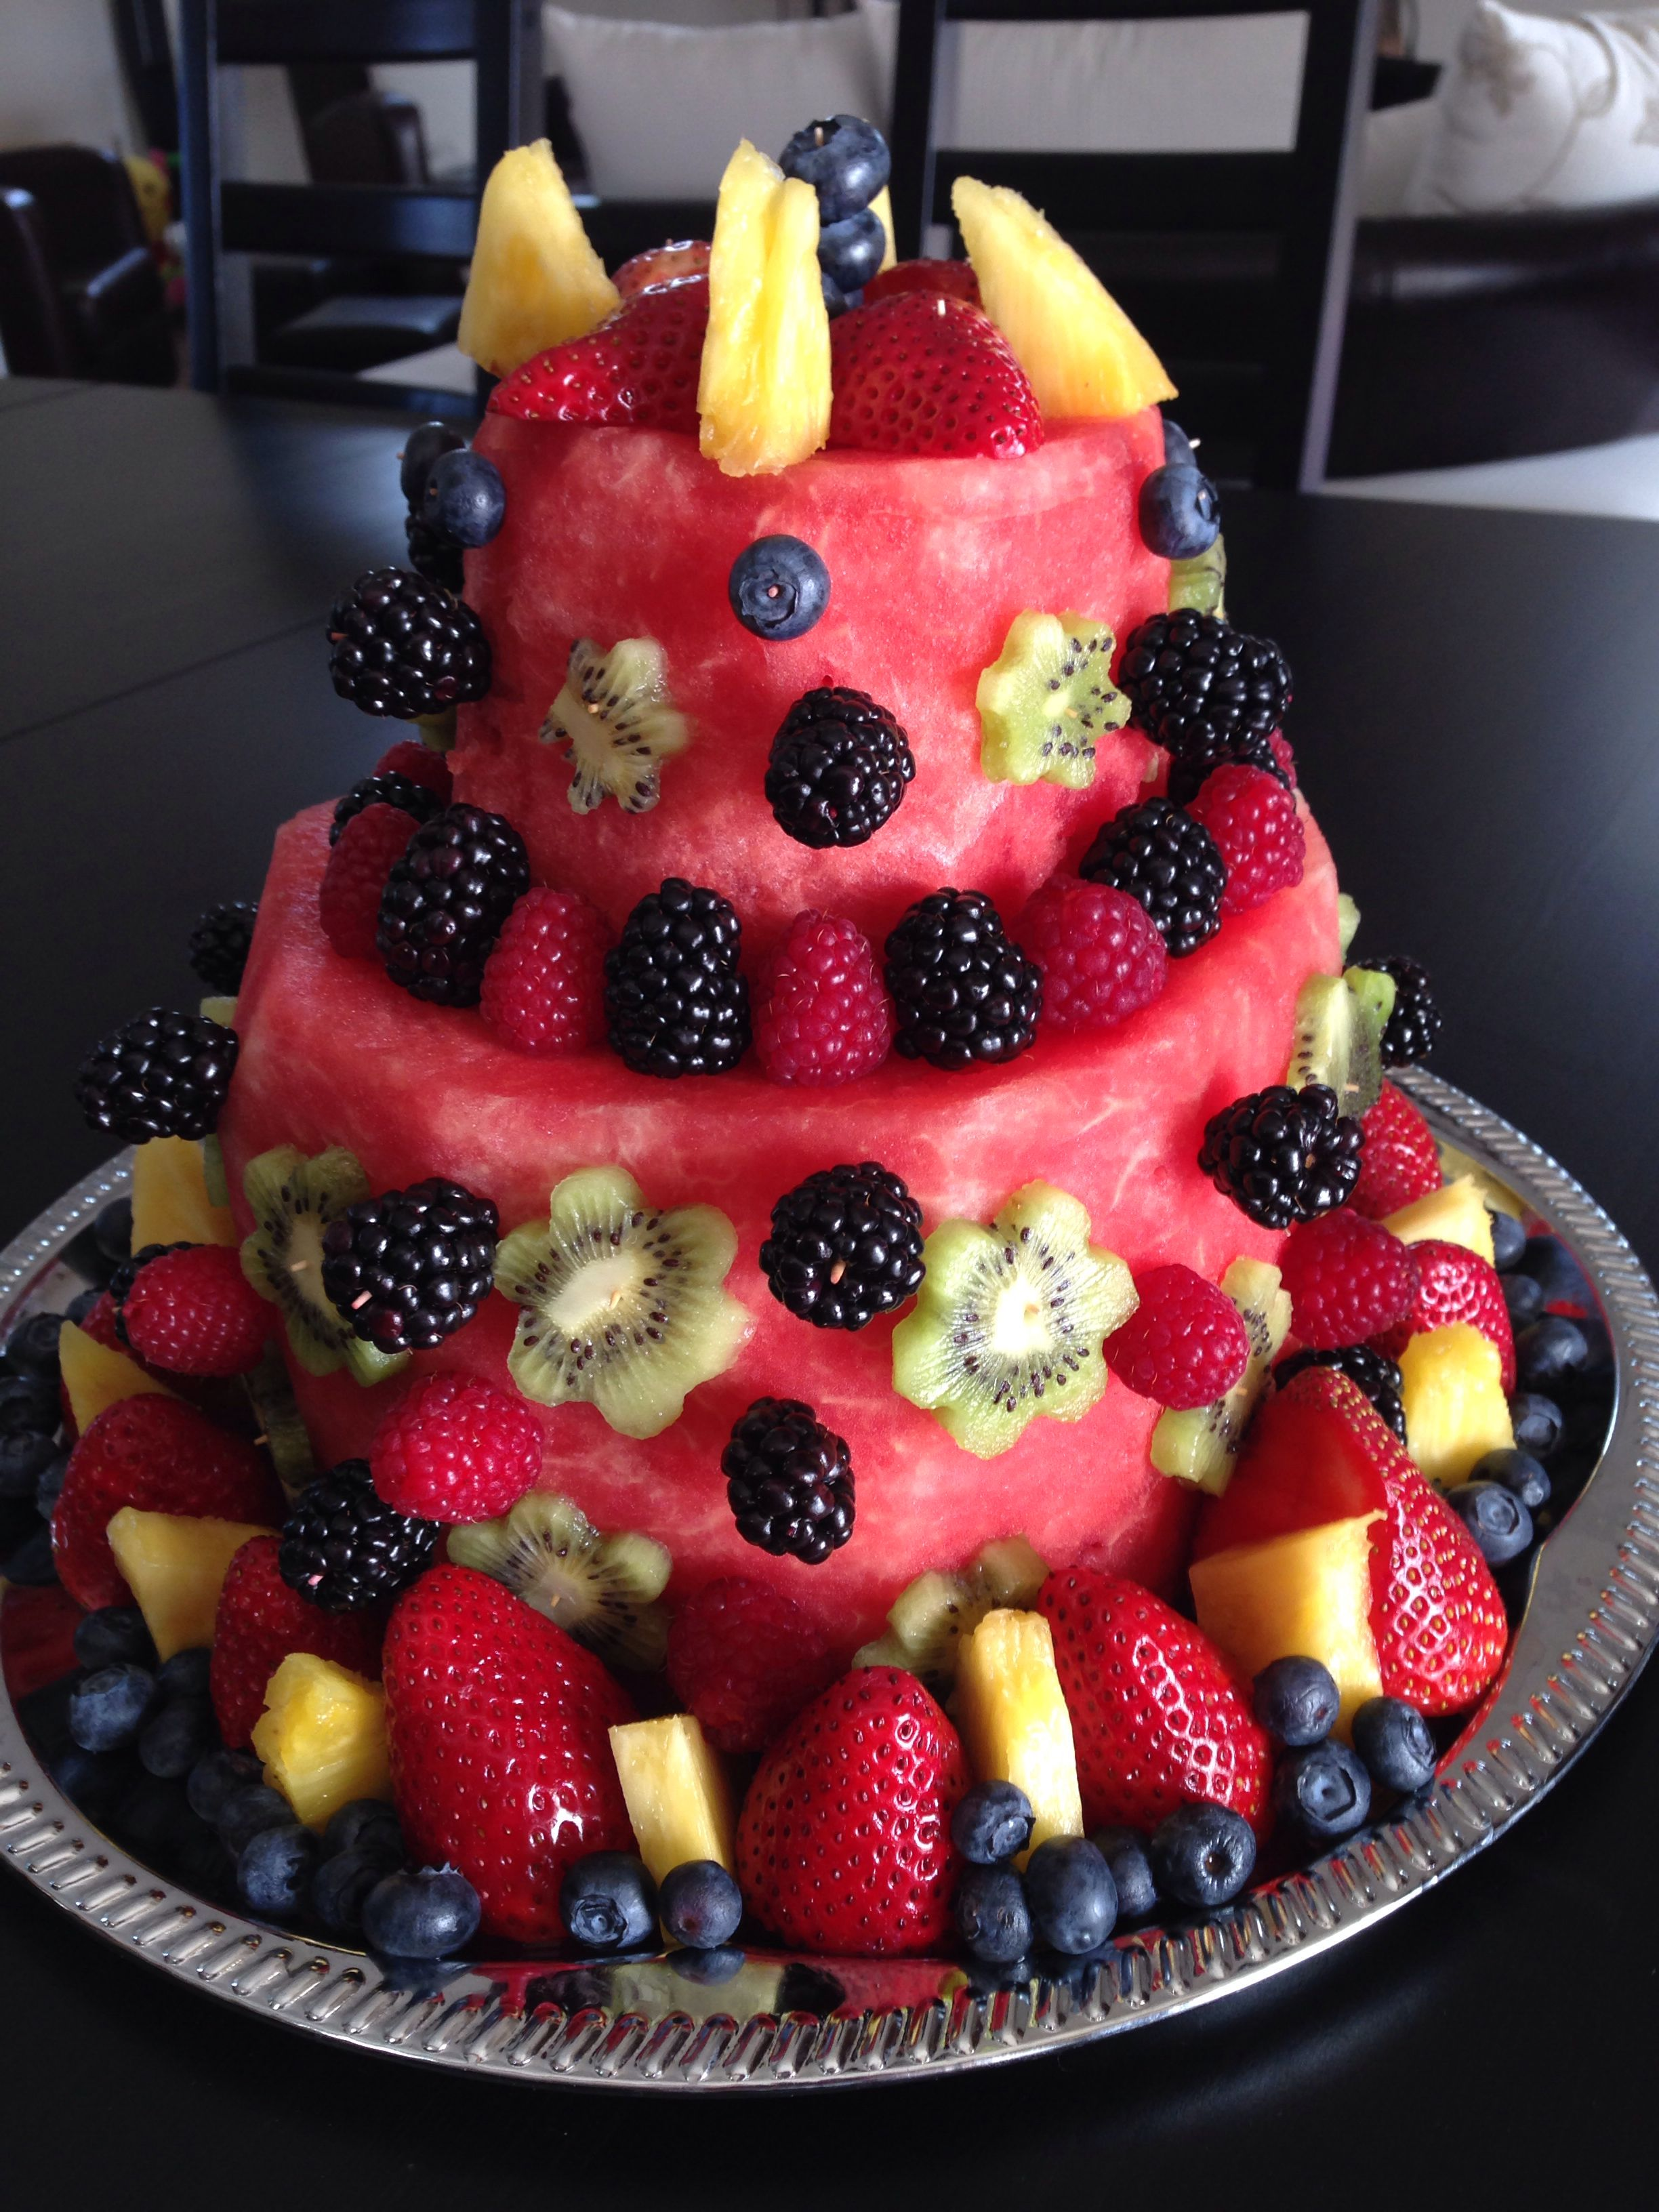 Our Own Birthday Creation Watermelon Fruit Cake